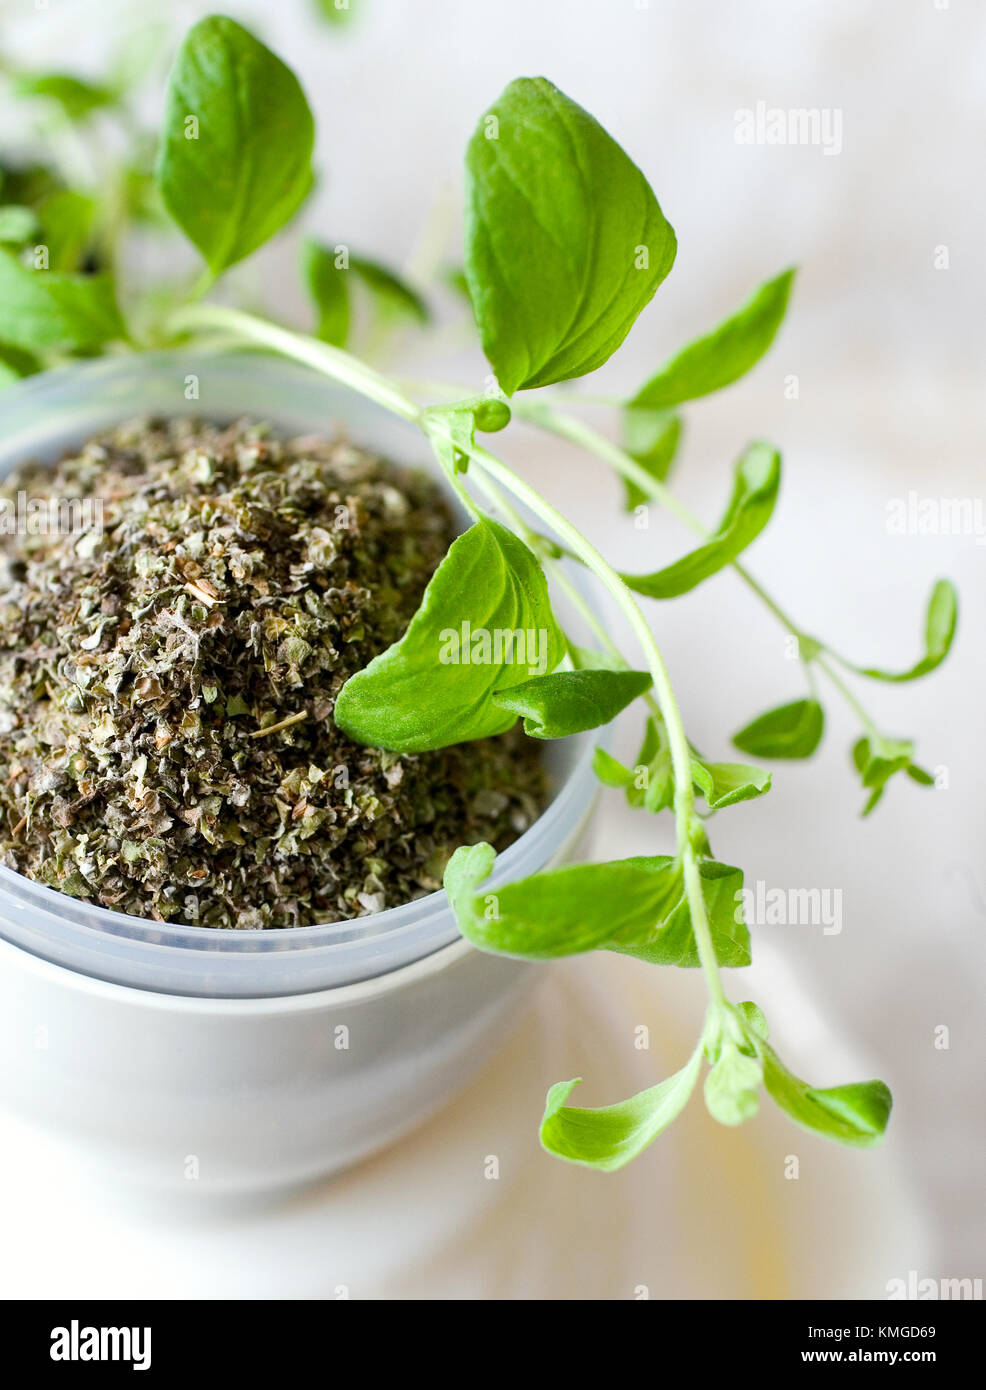 fresh and dried marjoram in a white cup on white background - Stock Image